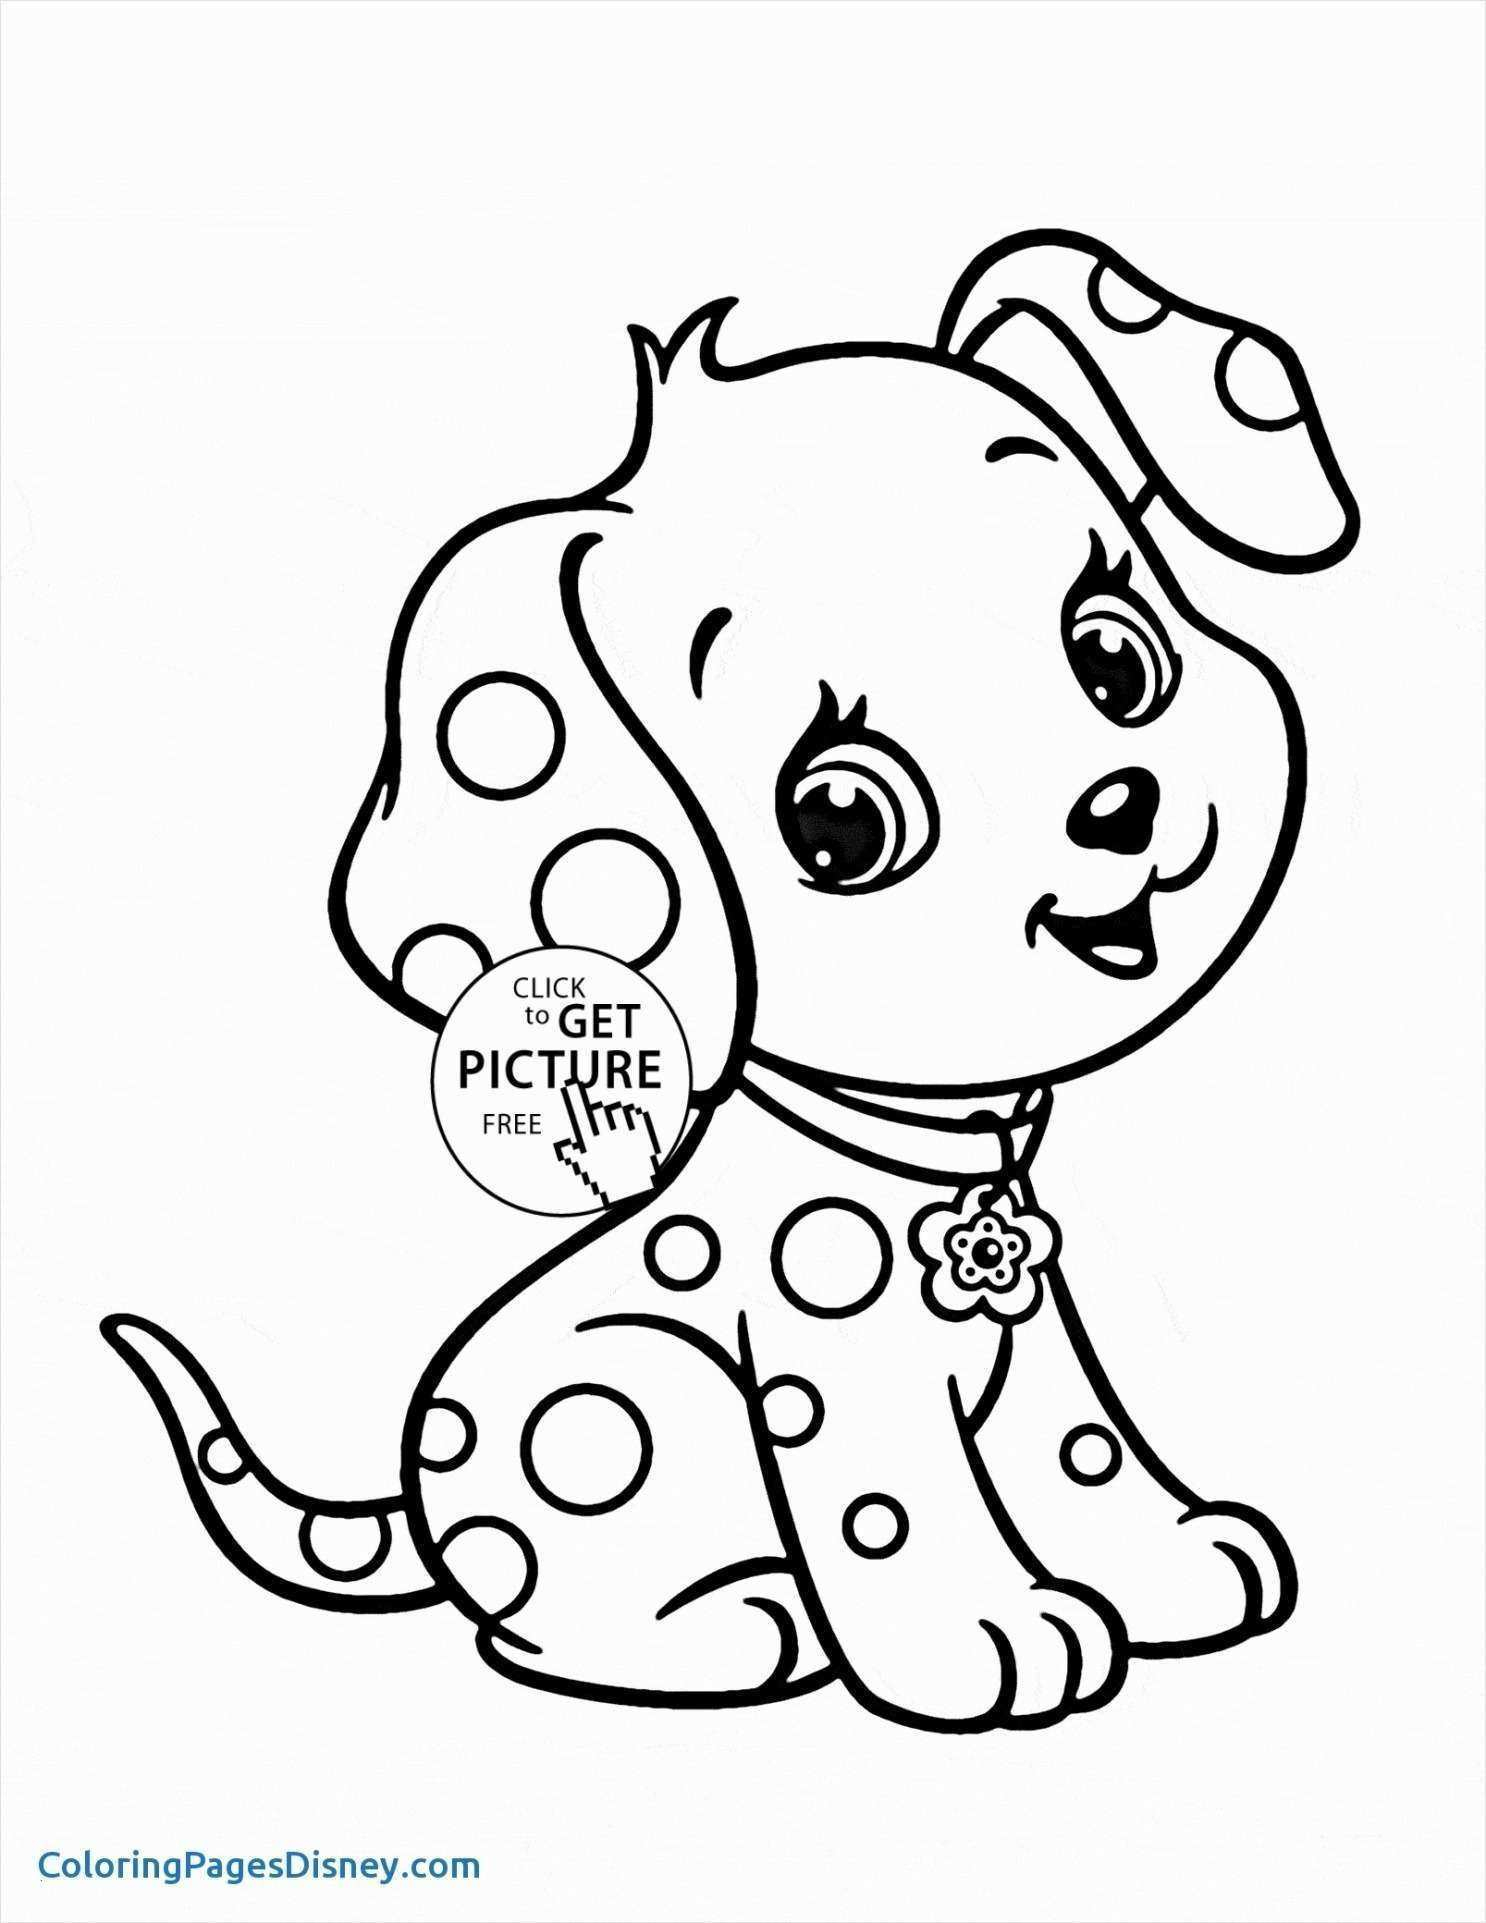 Coloring Disney Pages Coloring Coloring Pages Ideas Fortniteg Print And Color Com Free